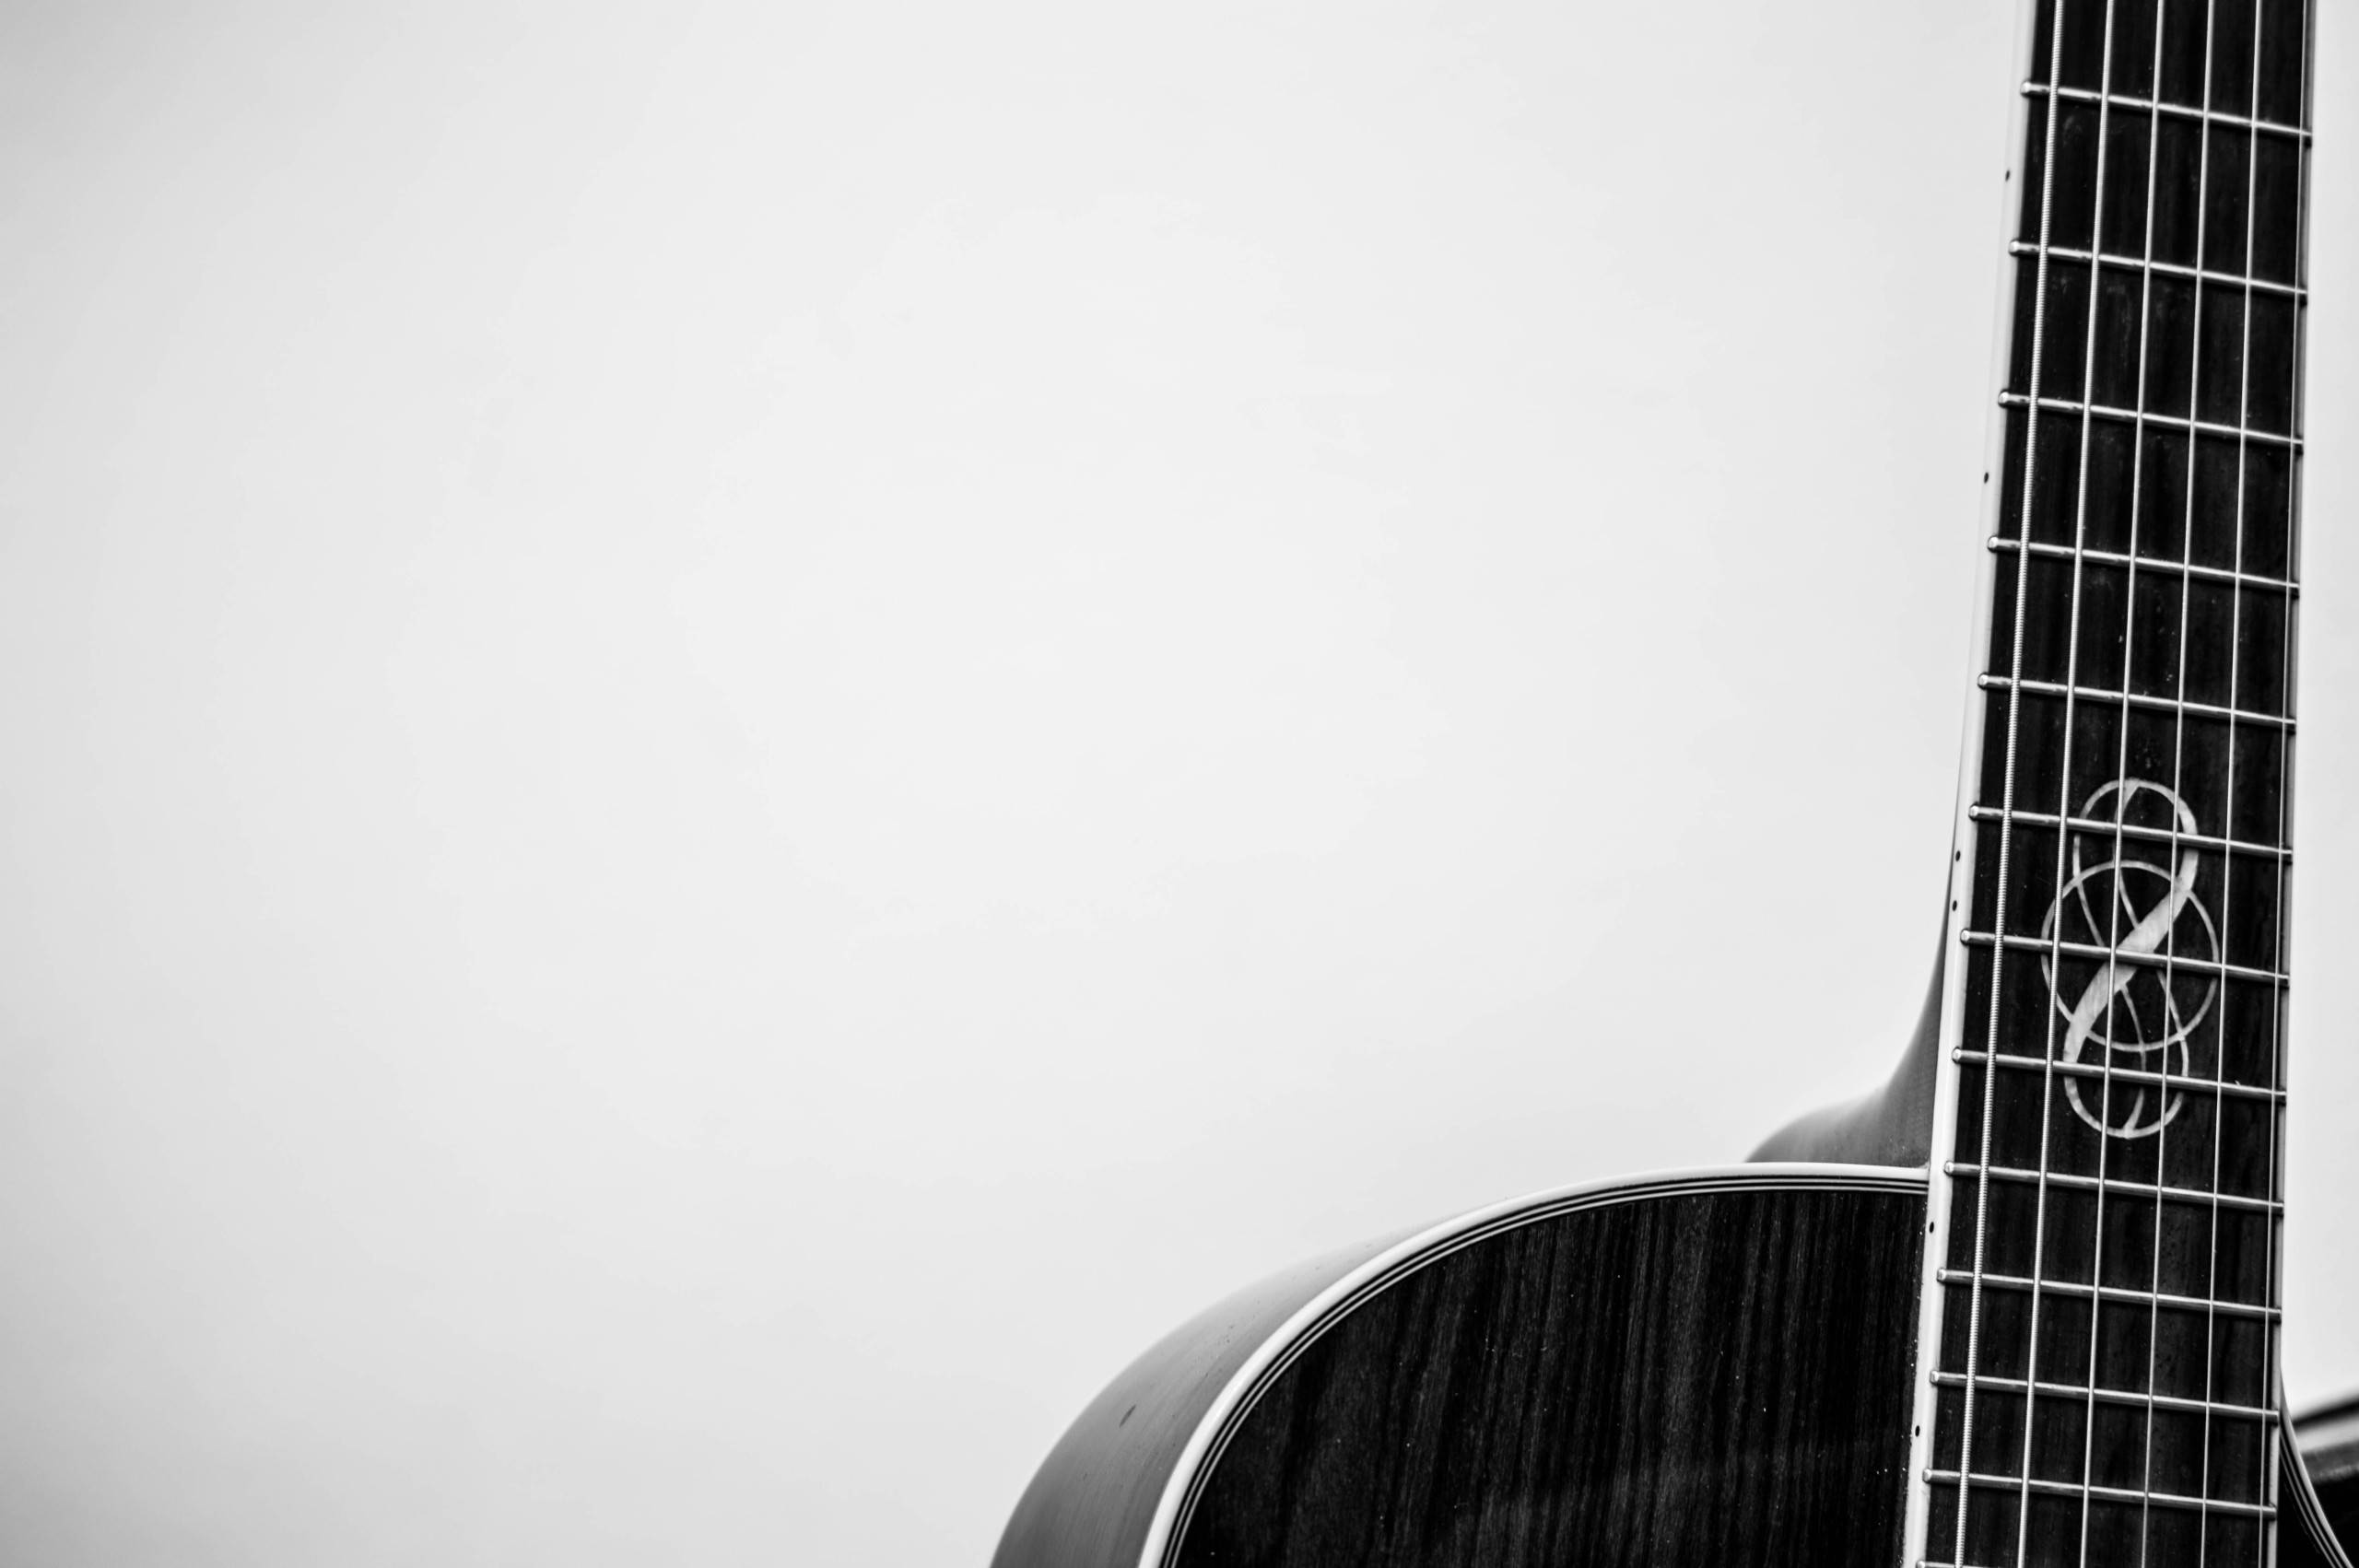 Guitar Hd Wallpaper Download Download 11 Community Wallpapers Chosen For Ubuntu 14 04